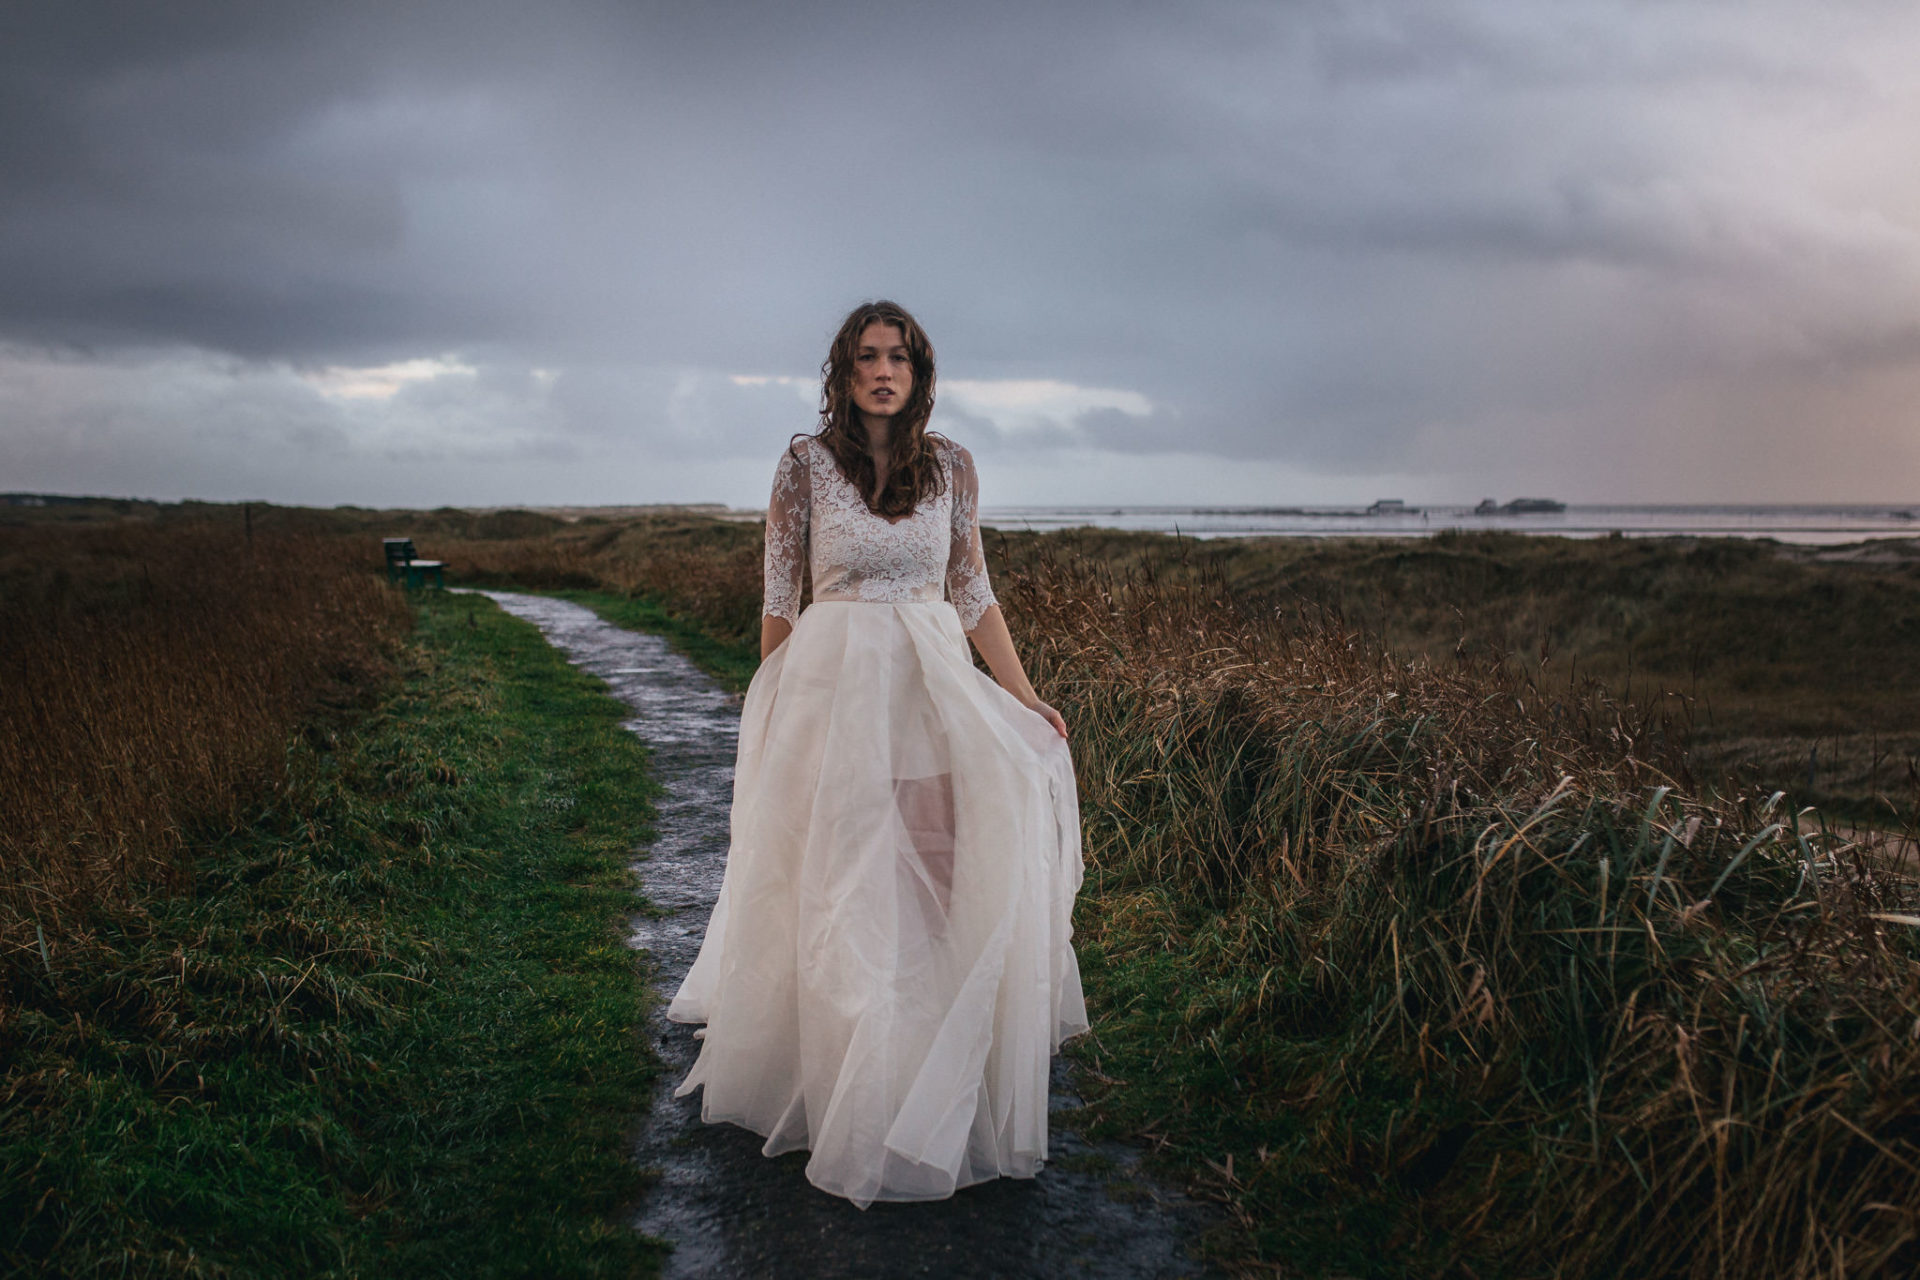 wedding rain-bridal portrait-sankt peter wording beach motel wedding